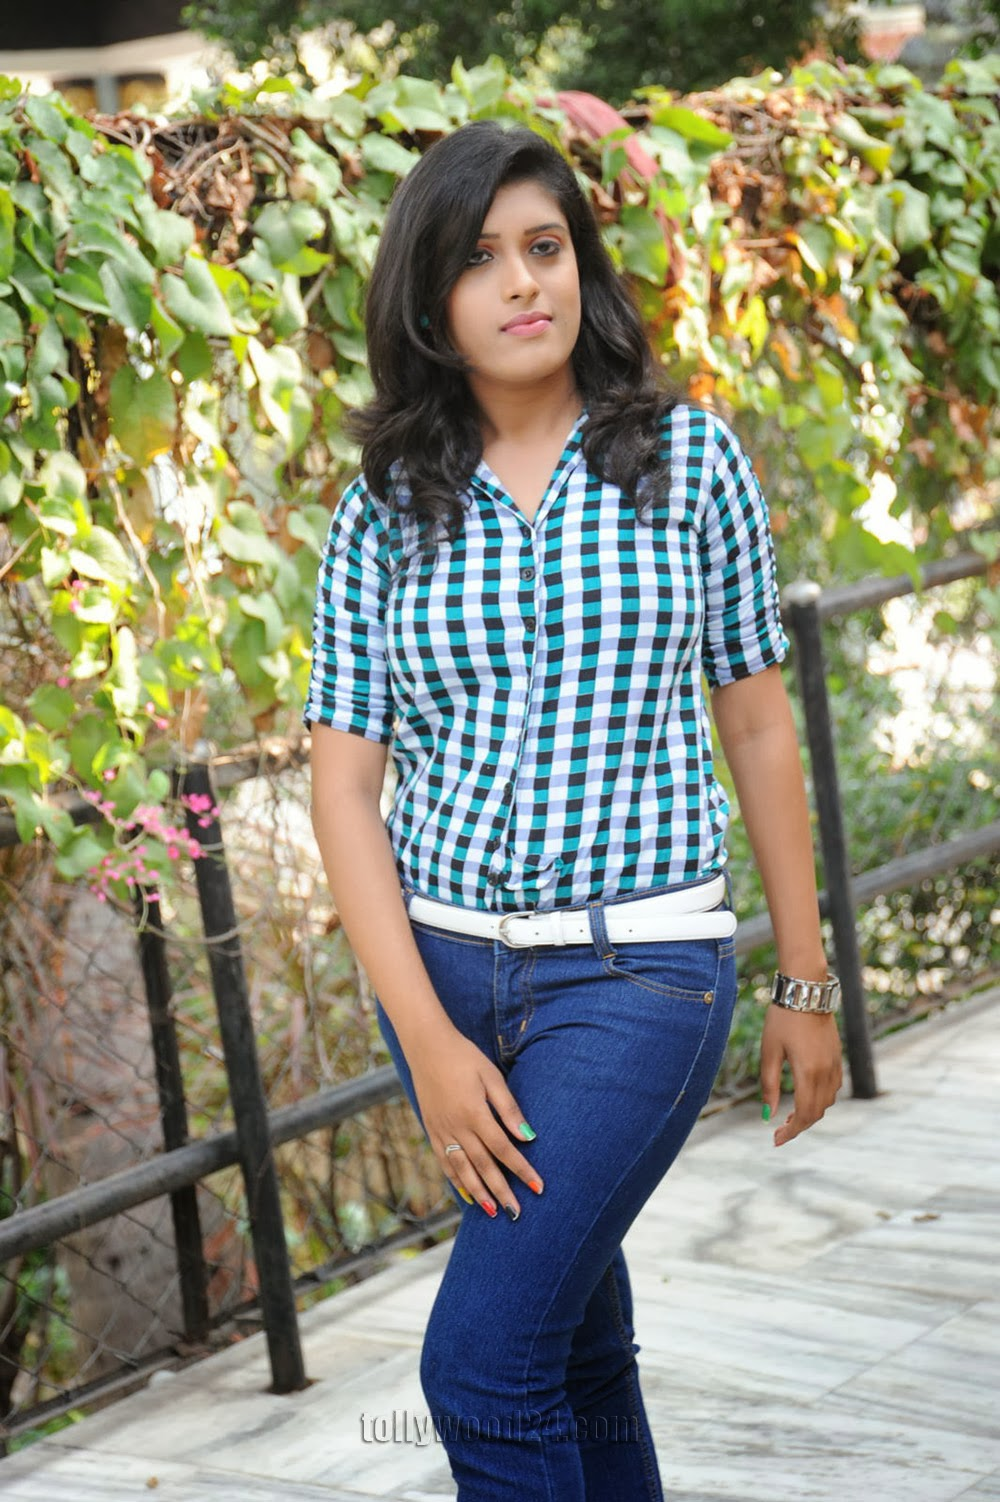 Liza reddy glam pix in jeans-HQ-Photo-6